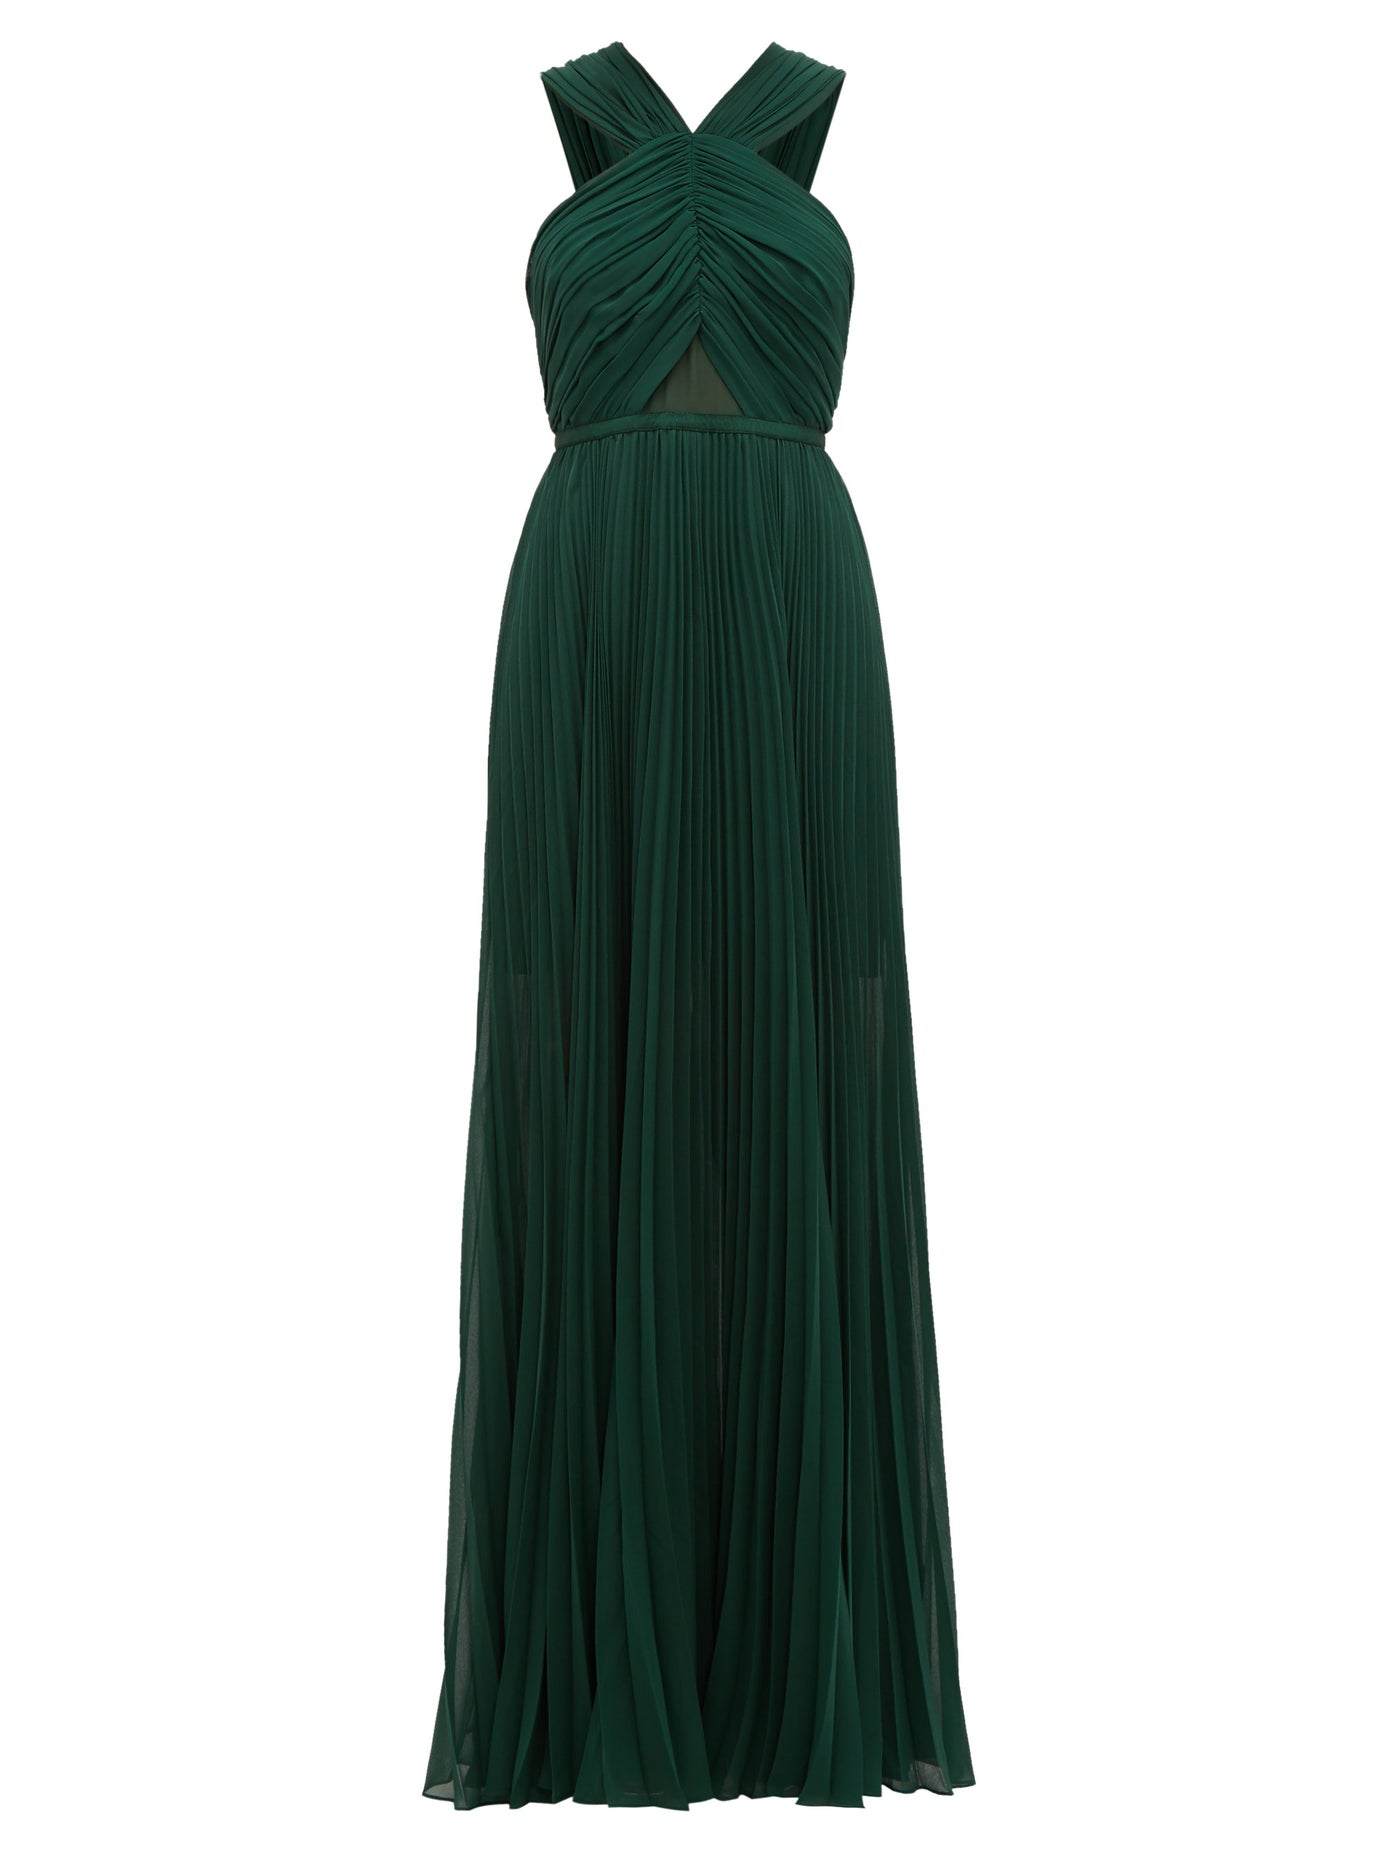 this  emerald halter neck dress  is swoon-worthy!